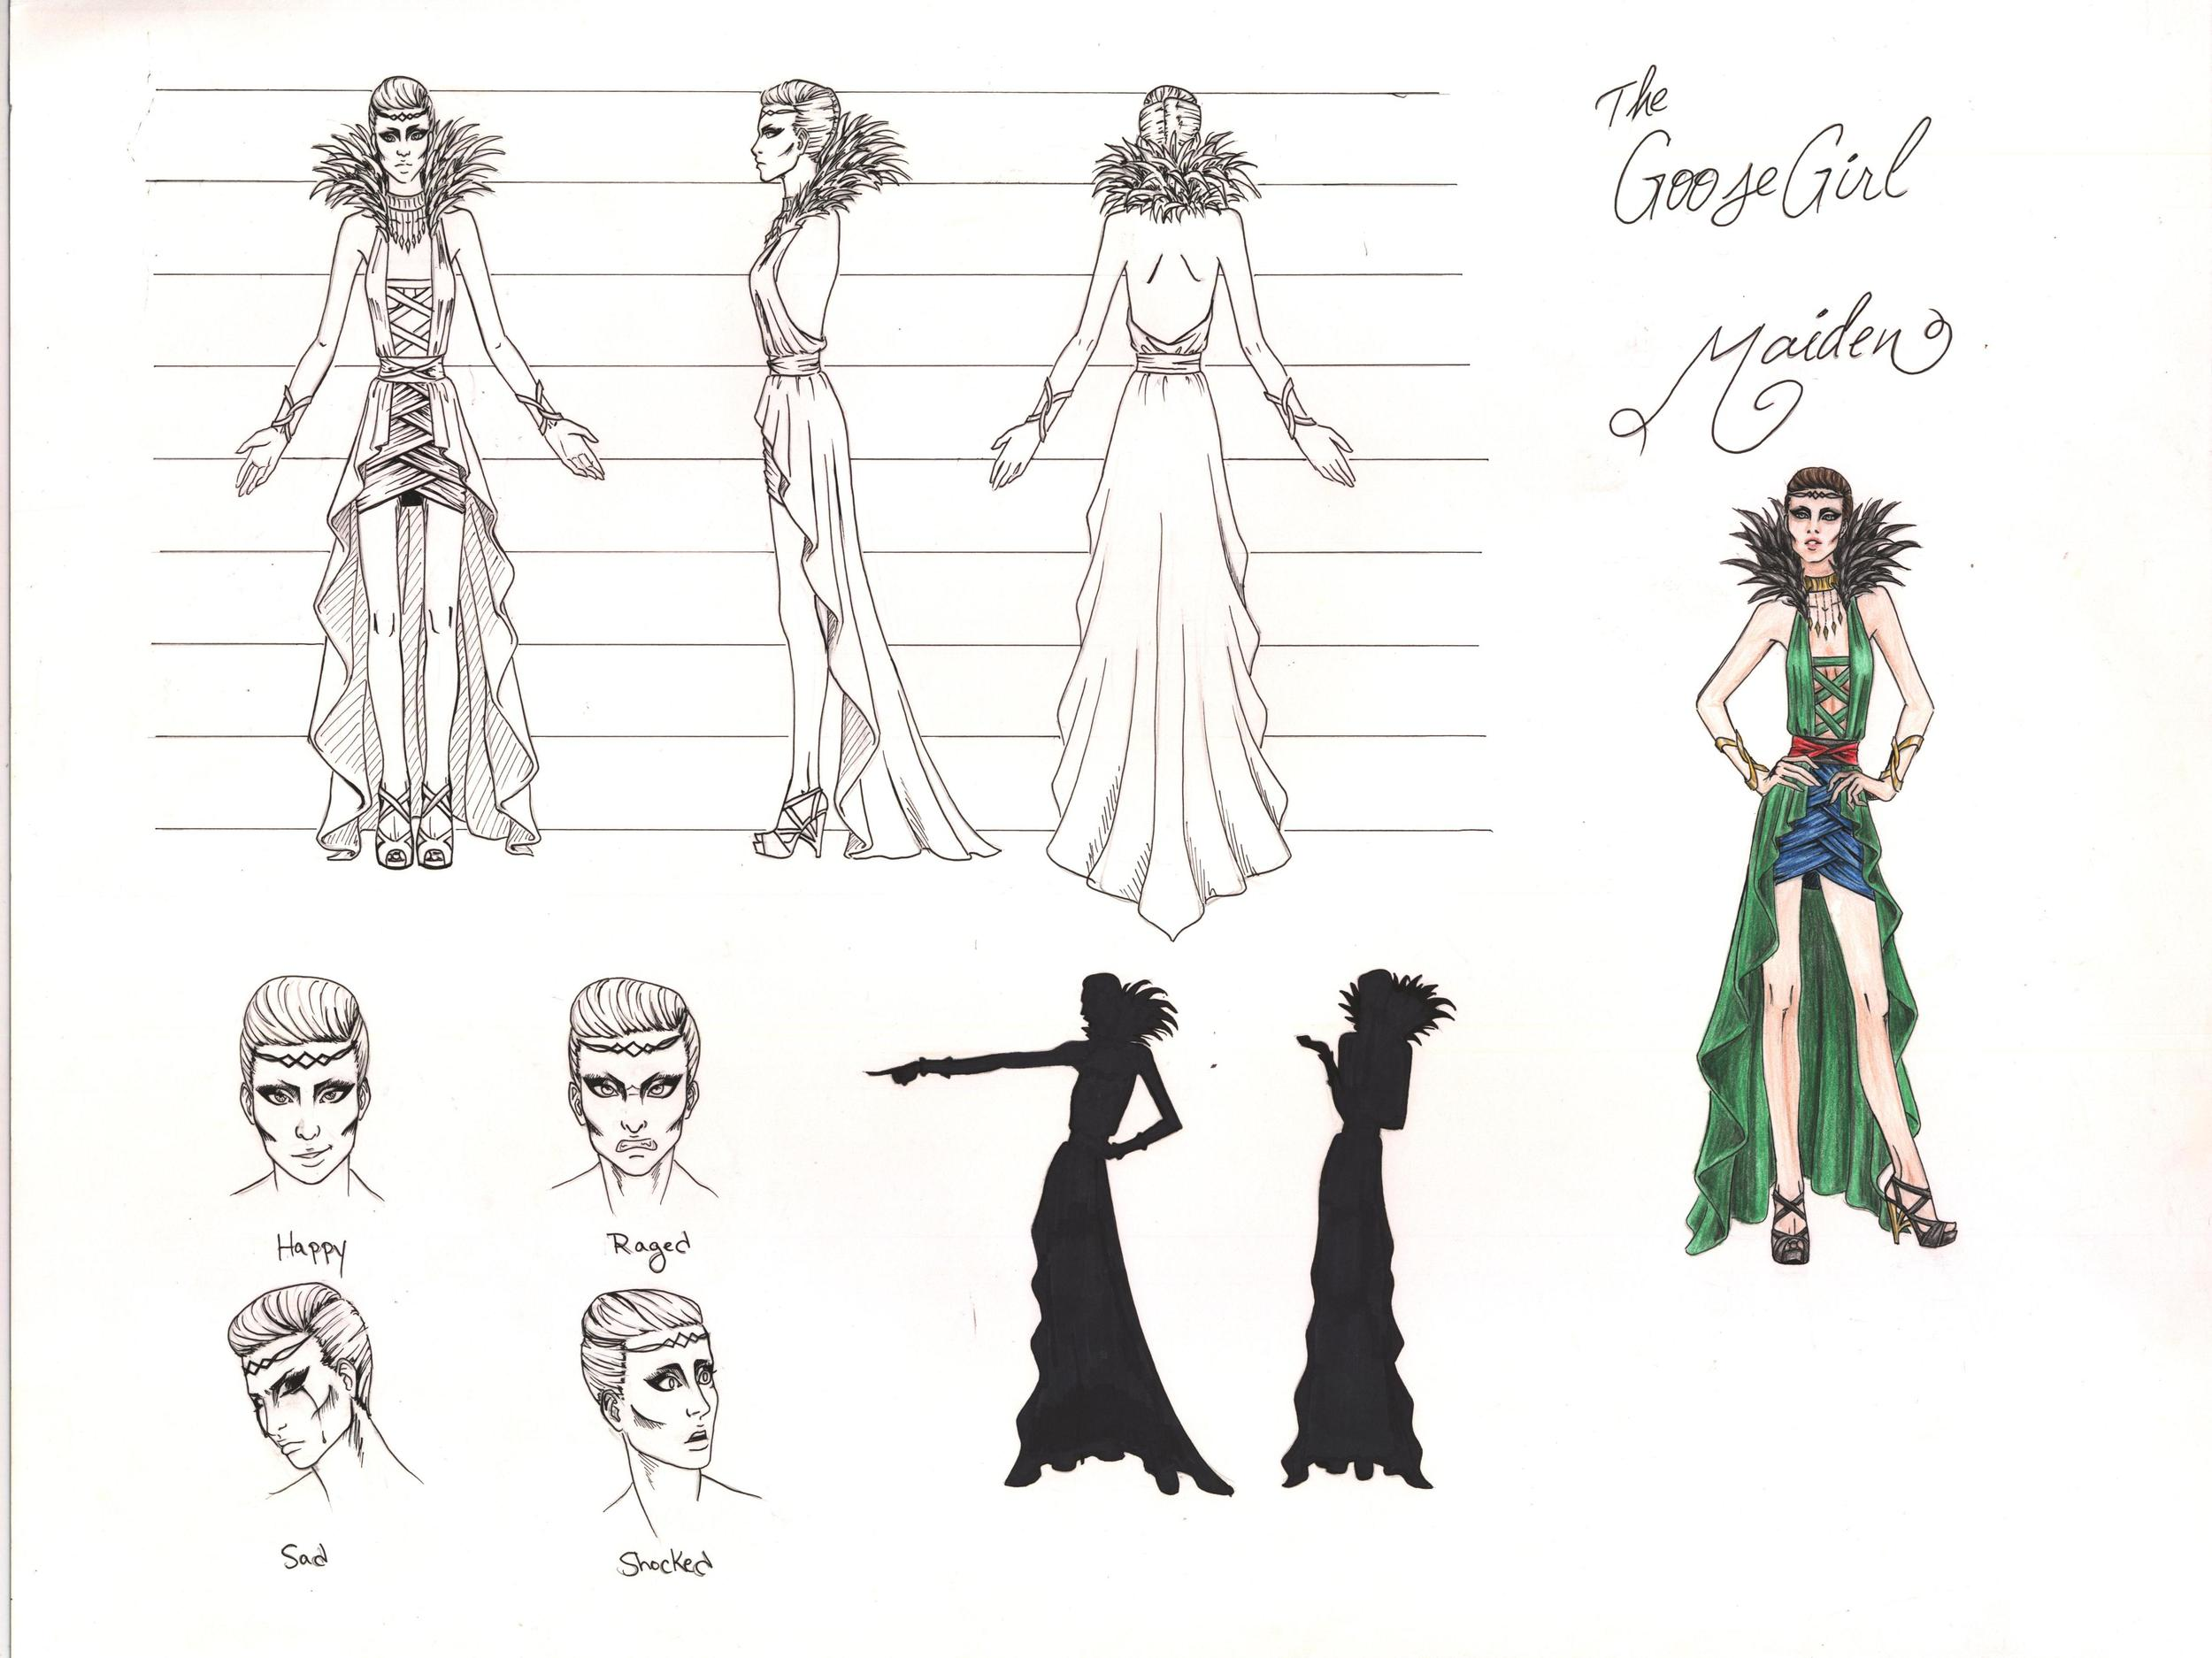 MOD_1311_CharacterSheet1_Andrew-Ford.jpg